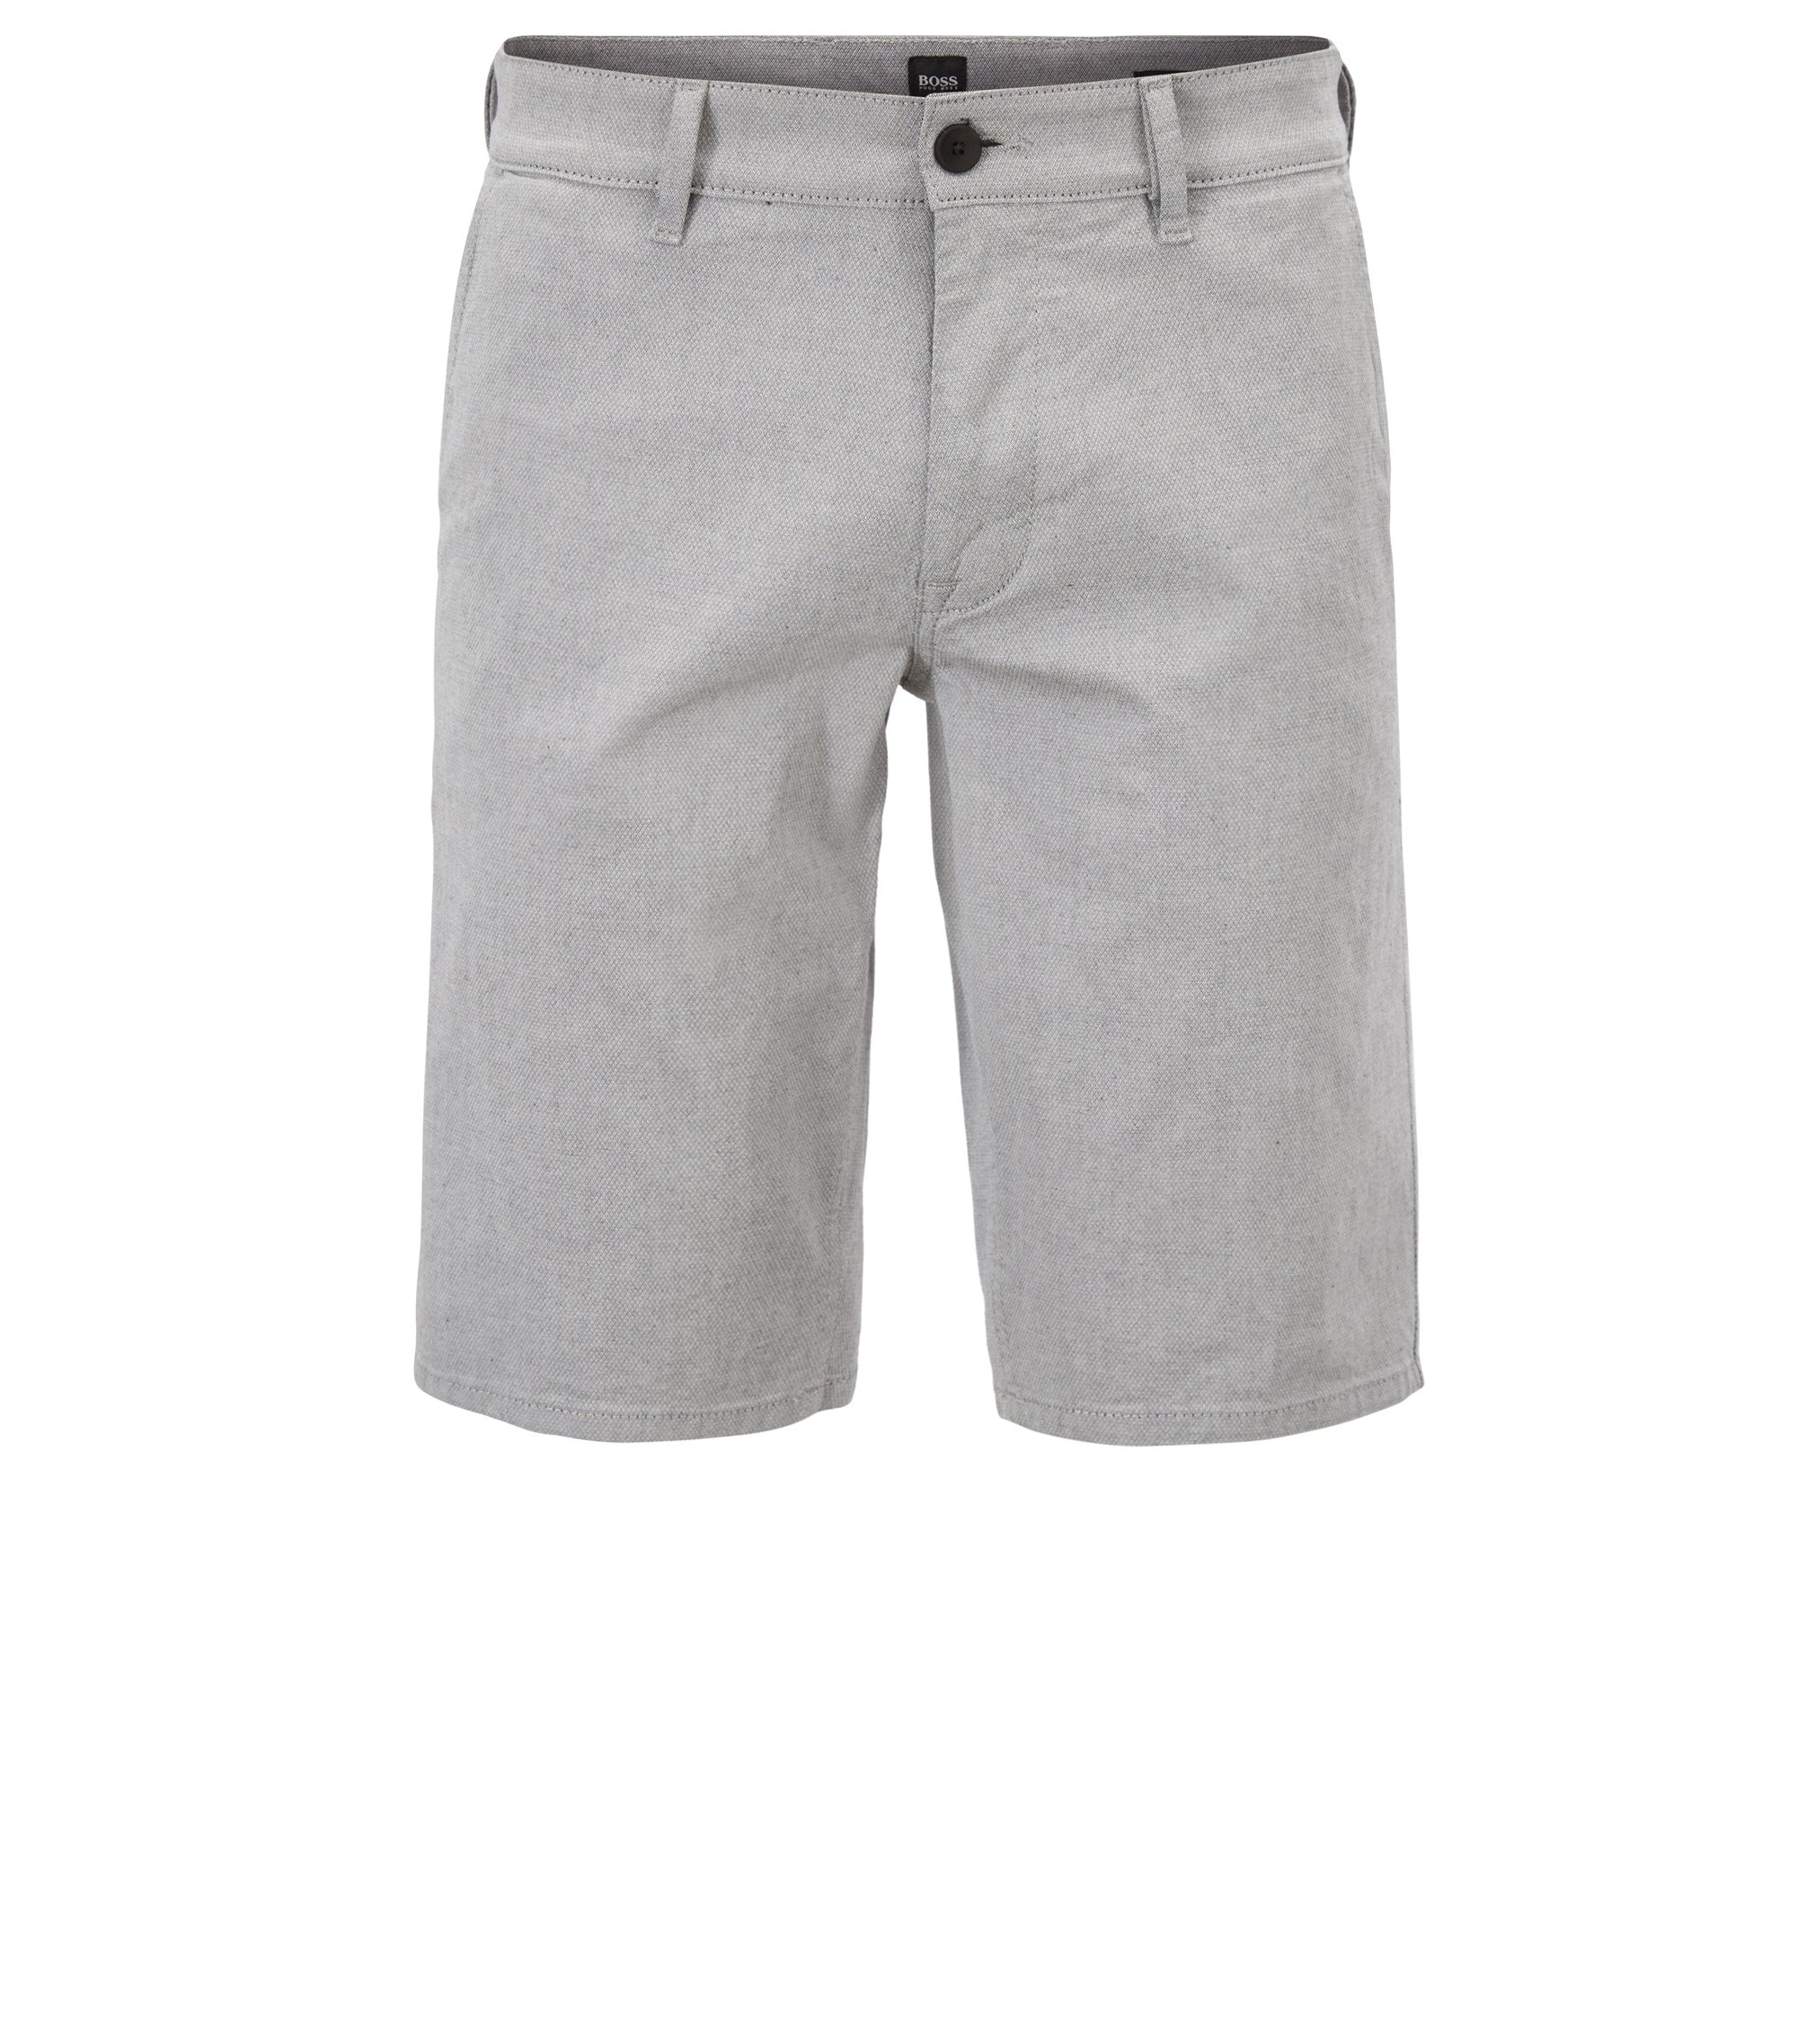 Slim-Fit Shorts aus Stretch-Baumwolle mit filigraner Struktur, Grau